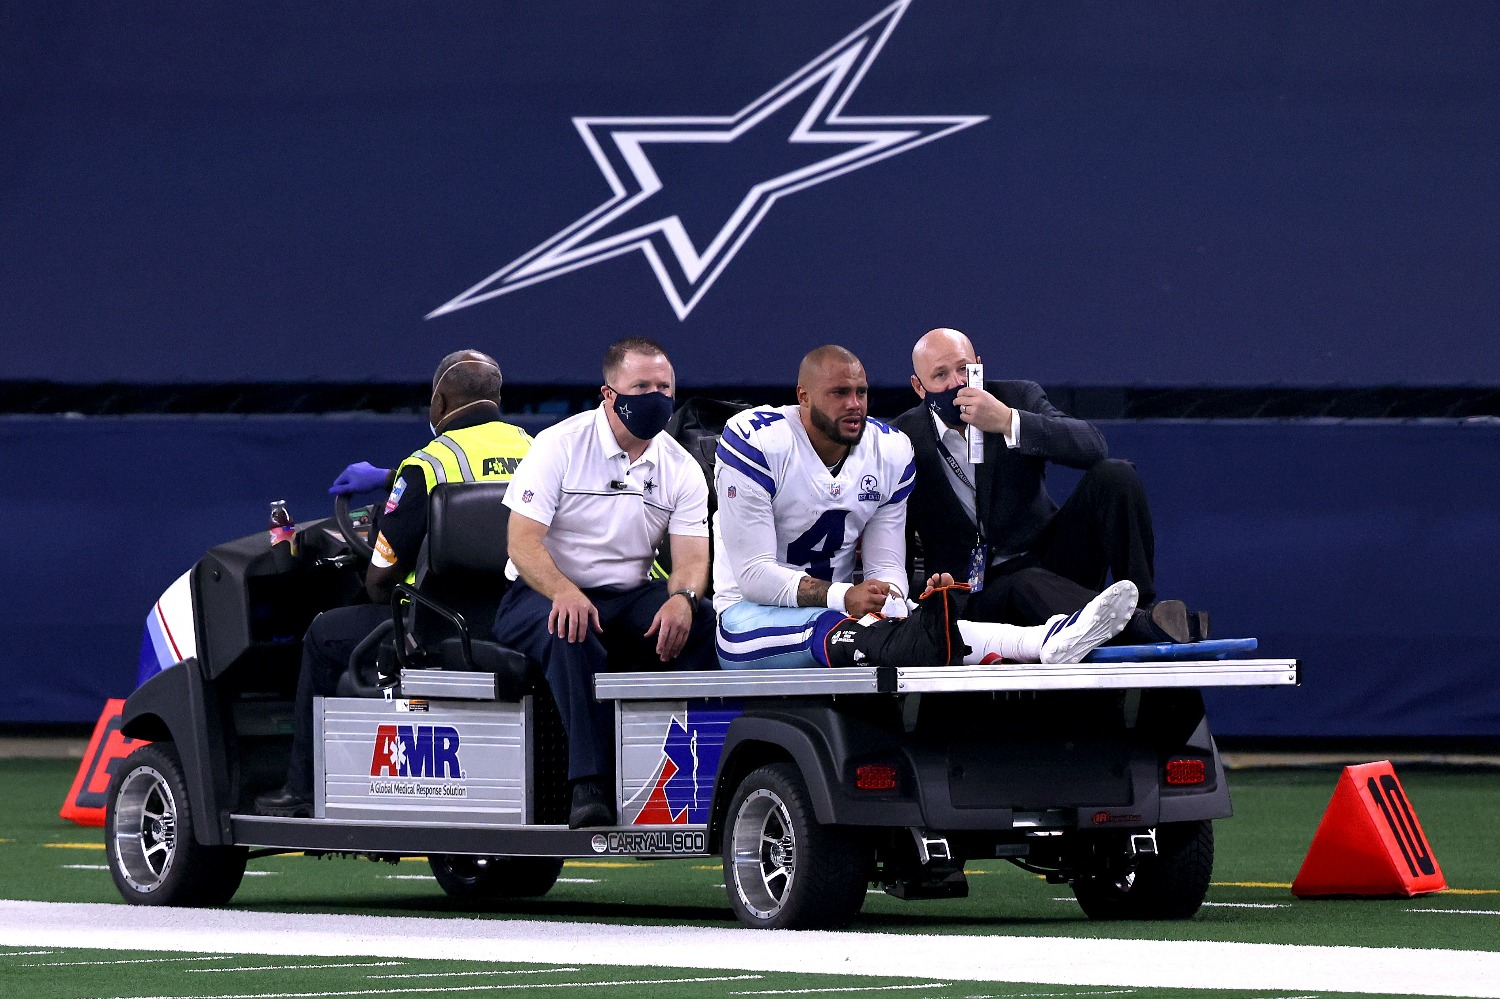 Dak Prescott just suffered a devastating blow to his Cowboys legacy. Will his gruesome injury prevent him from ever leading Dallas to a Super Bowl title?